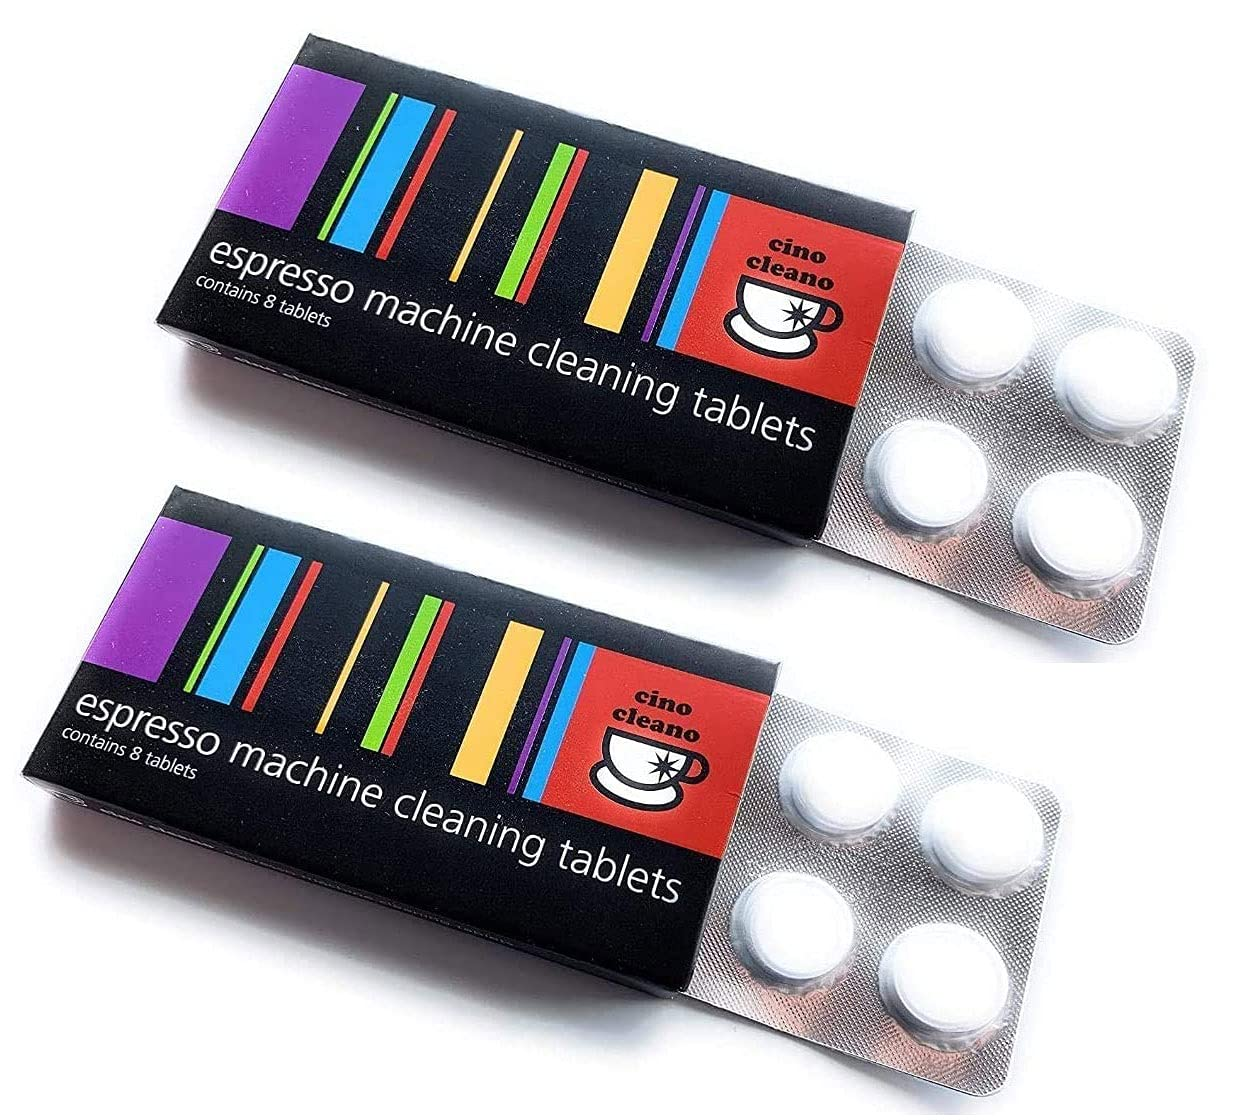 Cino Cleano Espresso Machine Cleaning Tablets, for Breville Espresso Machines, Descaling Tablets for Baristas (Pack of 2, 16 Tablets)